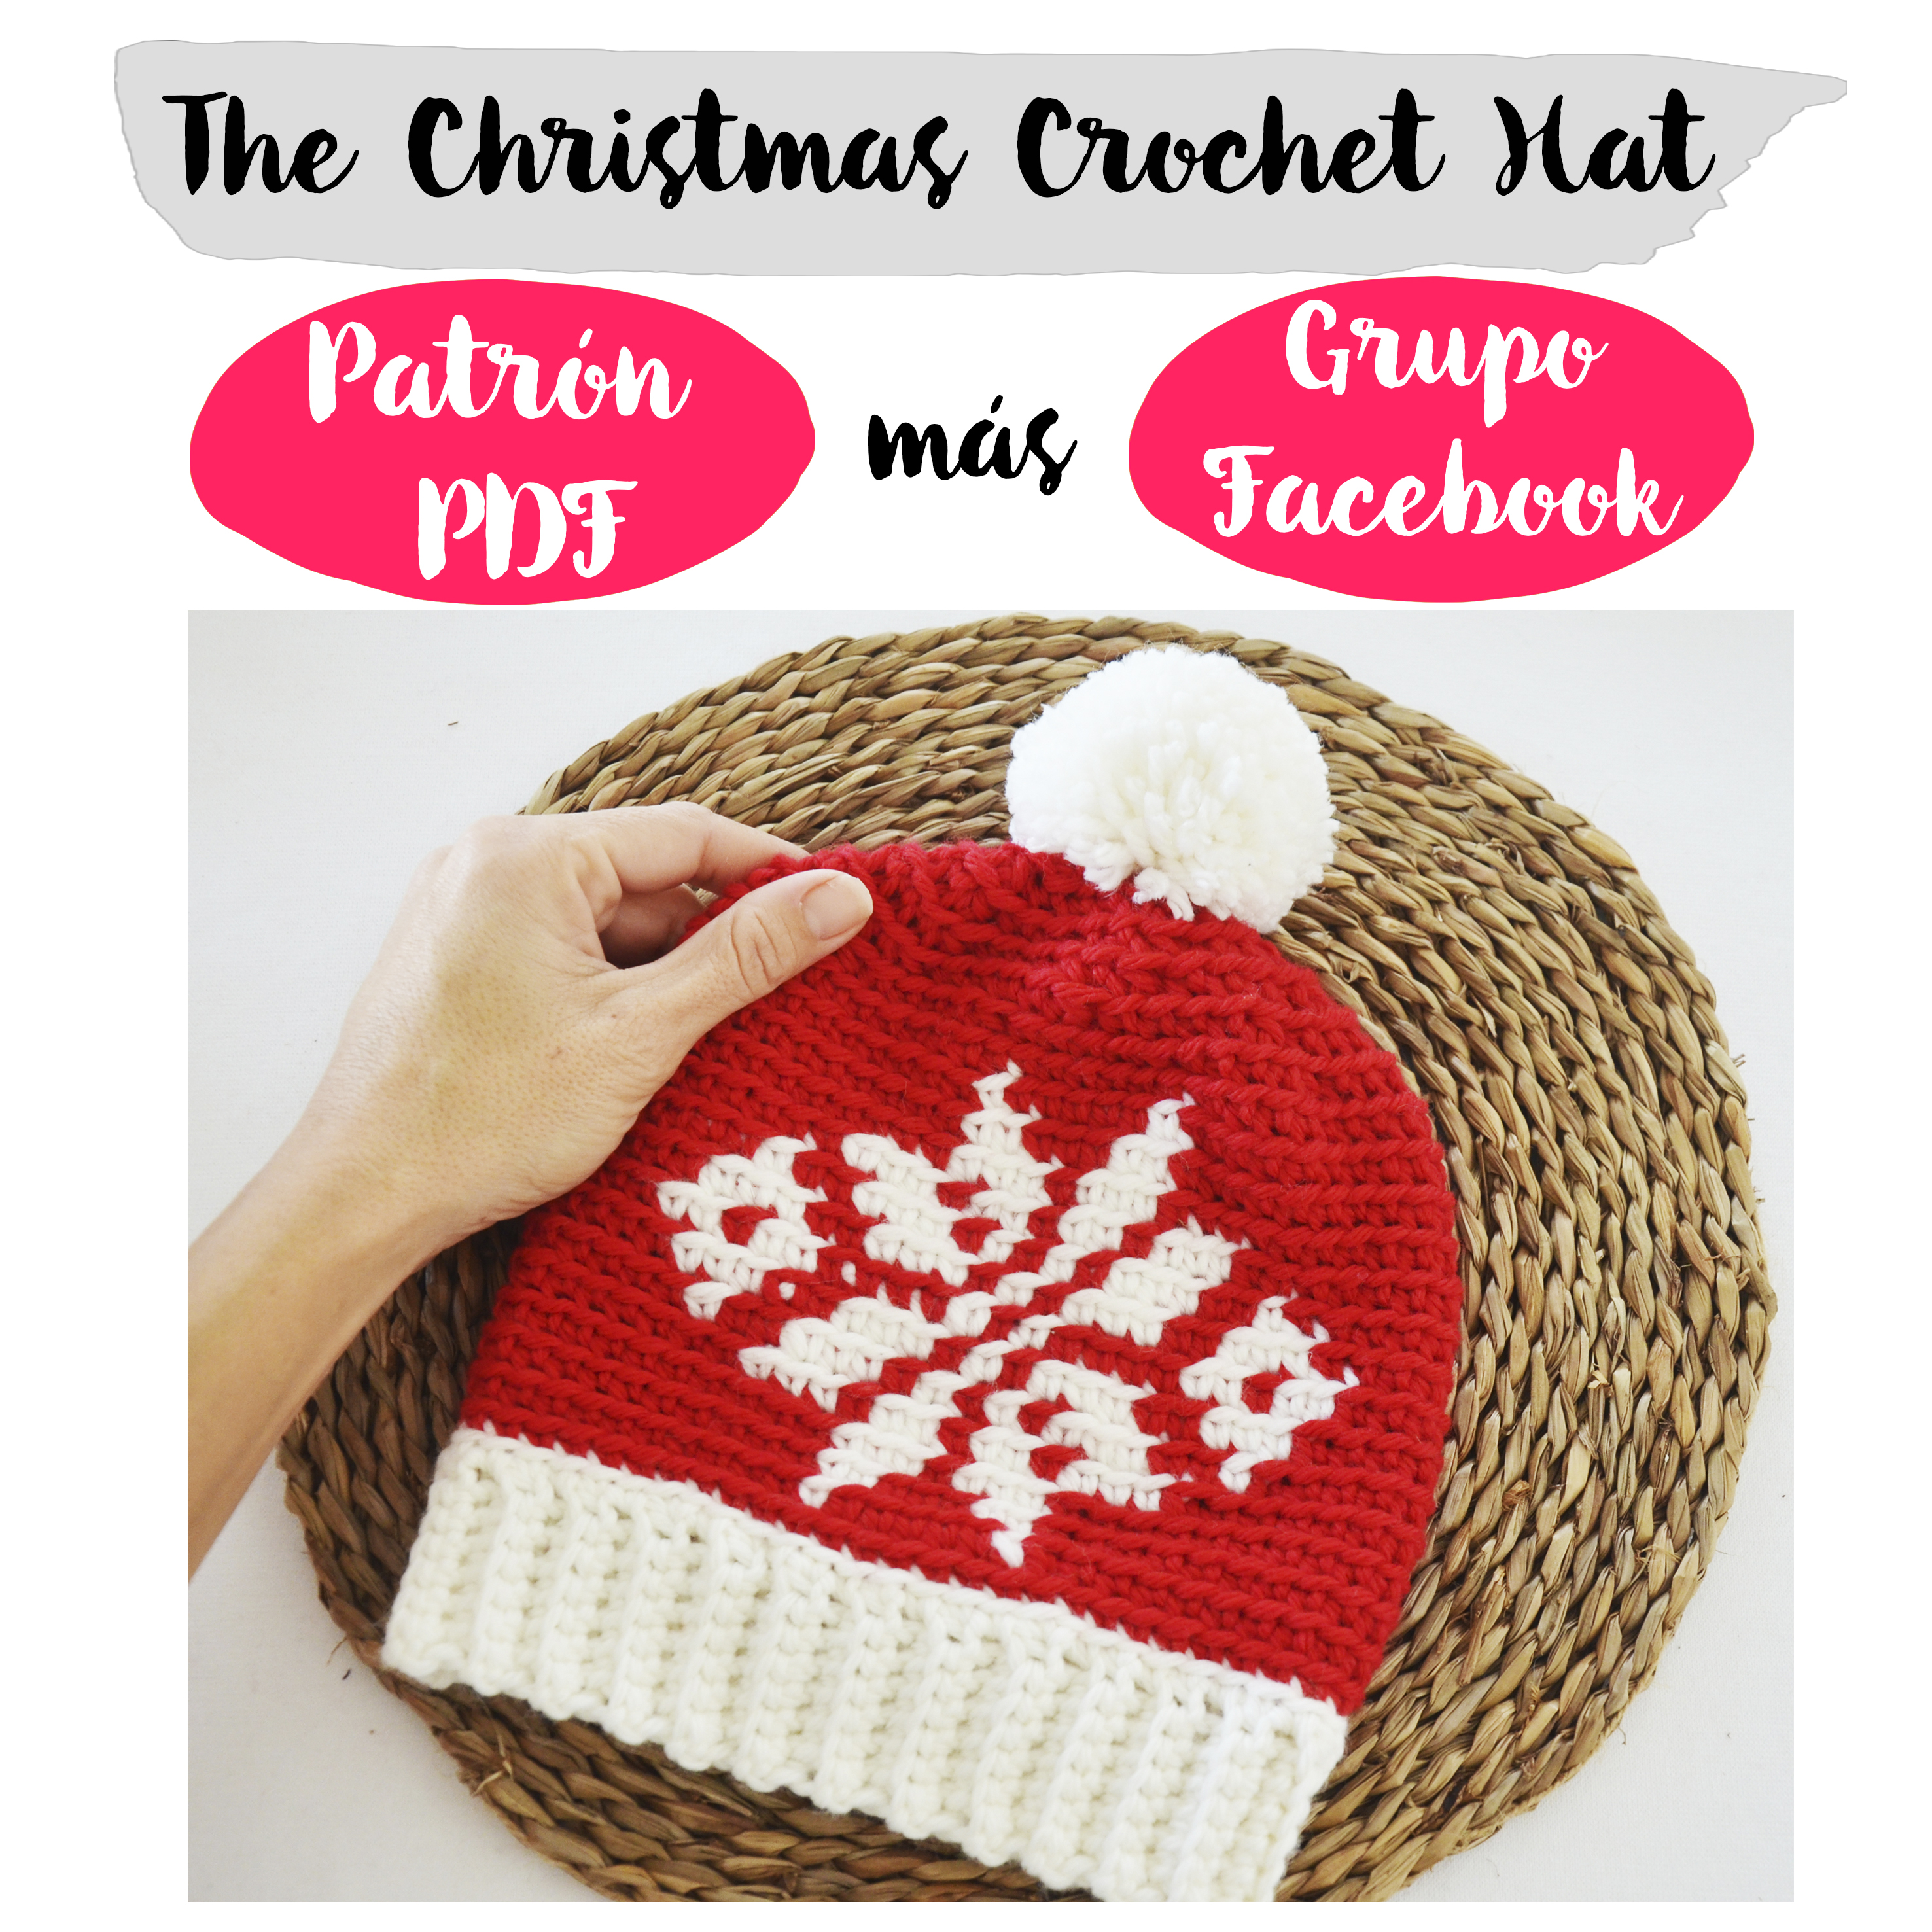 grupo privado de facebook crochet